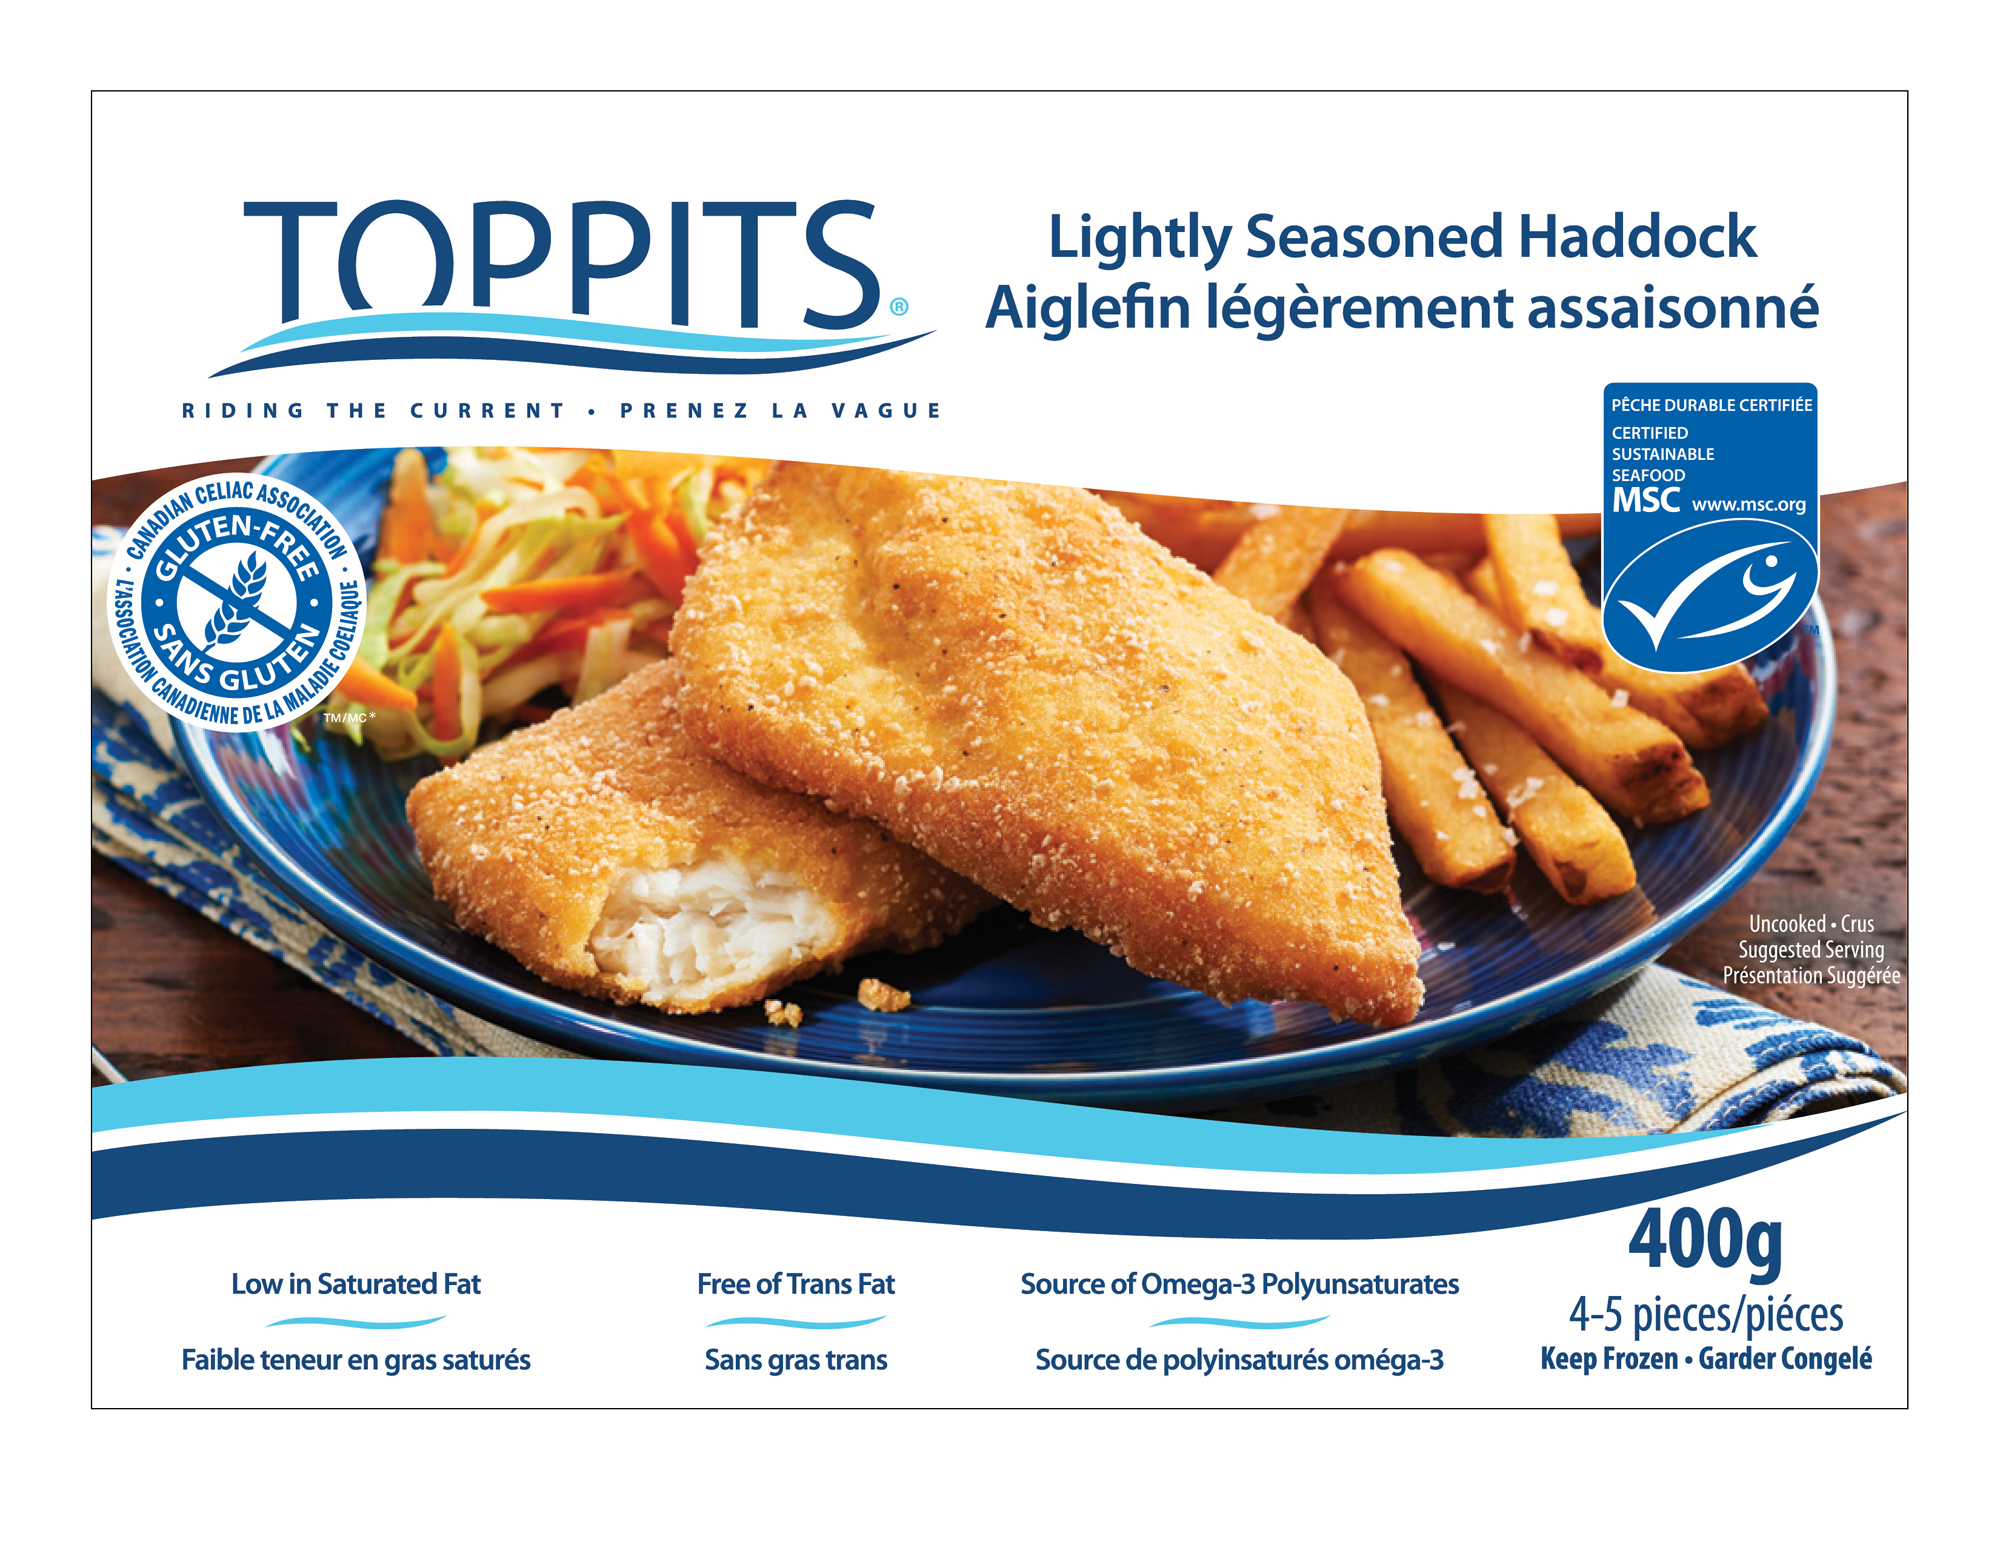 toppits foods ltd Toppits foods ltd case solution, explores this case the expansion of a product - garlic and herbs cubes this case can be used to explore the merits of alternative distribution channels or.